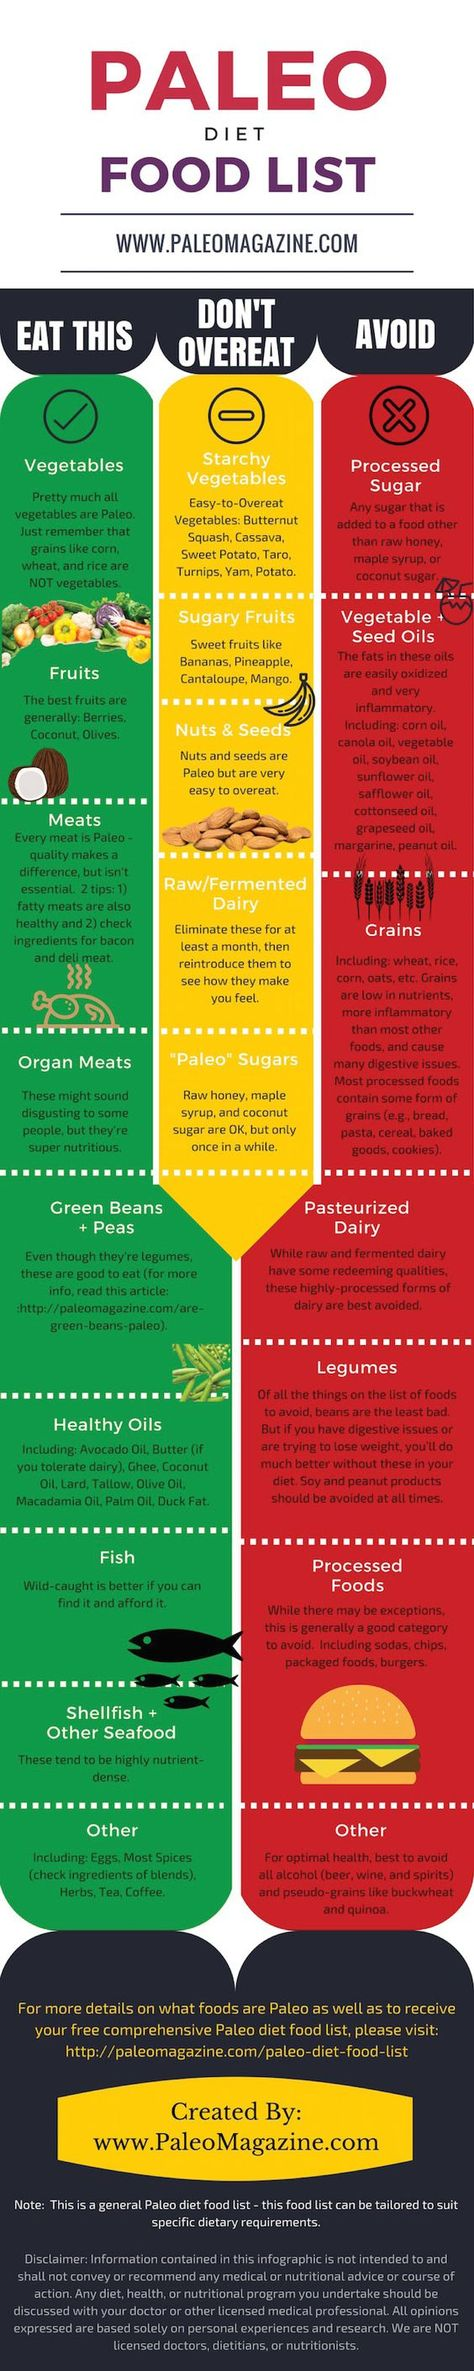 do tea help you lose weight